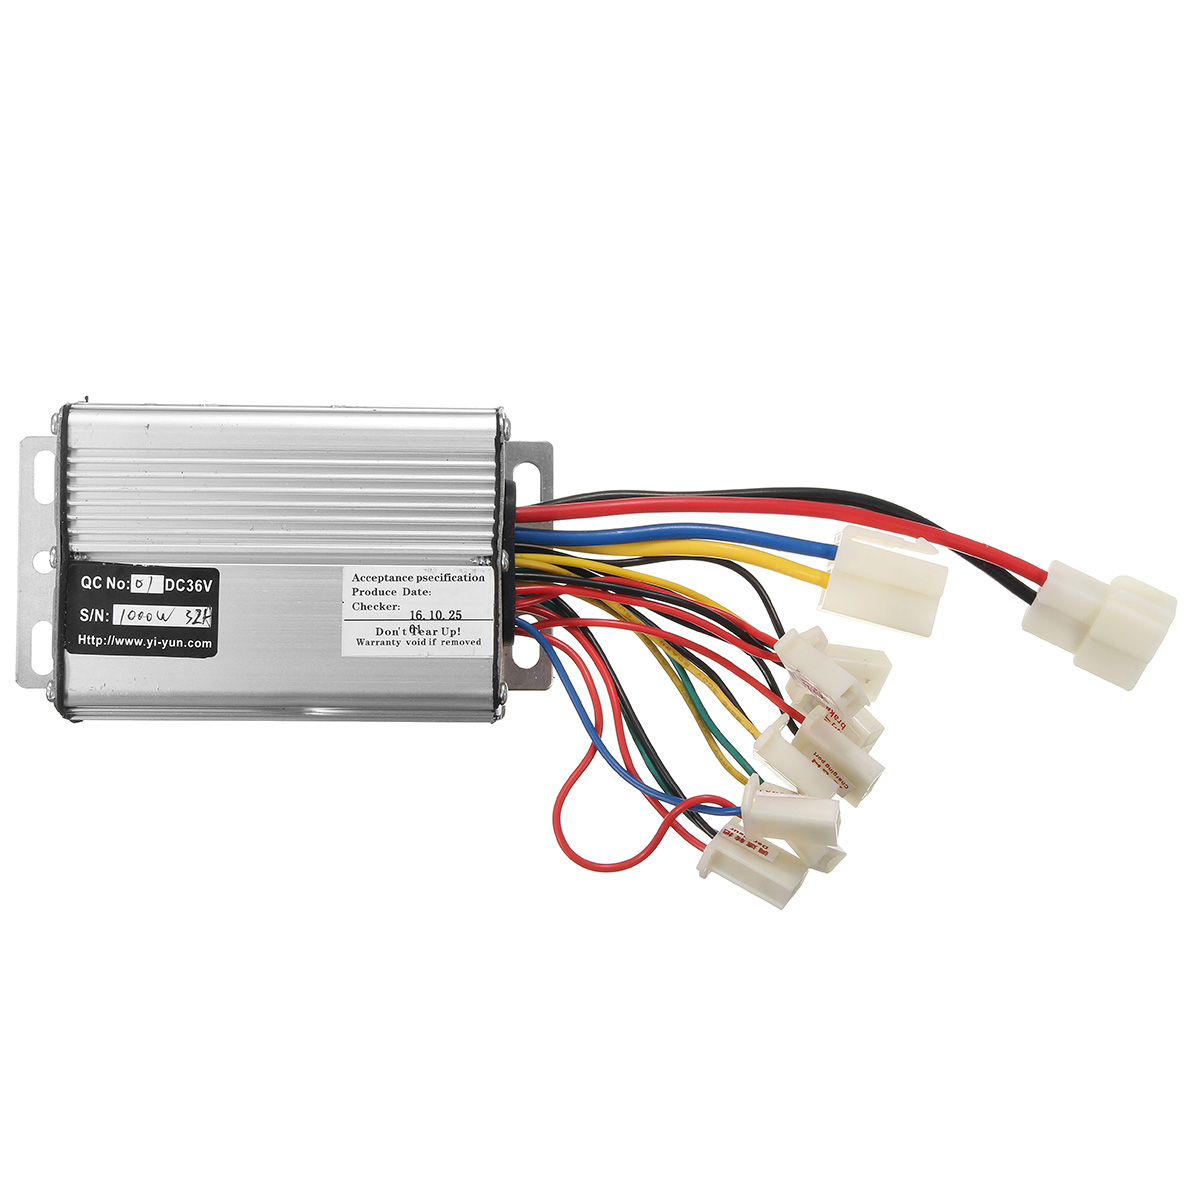 hight resolution of 36v 1000w electric scooter motor brush speed controller for vehicle bicycle bike